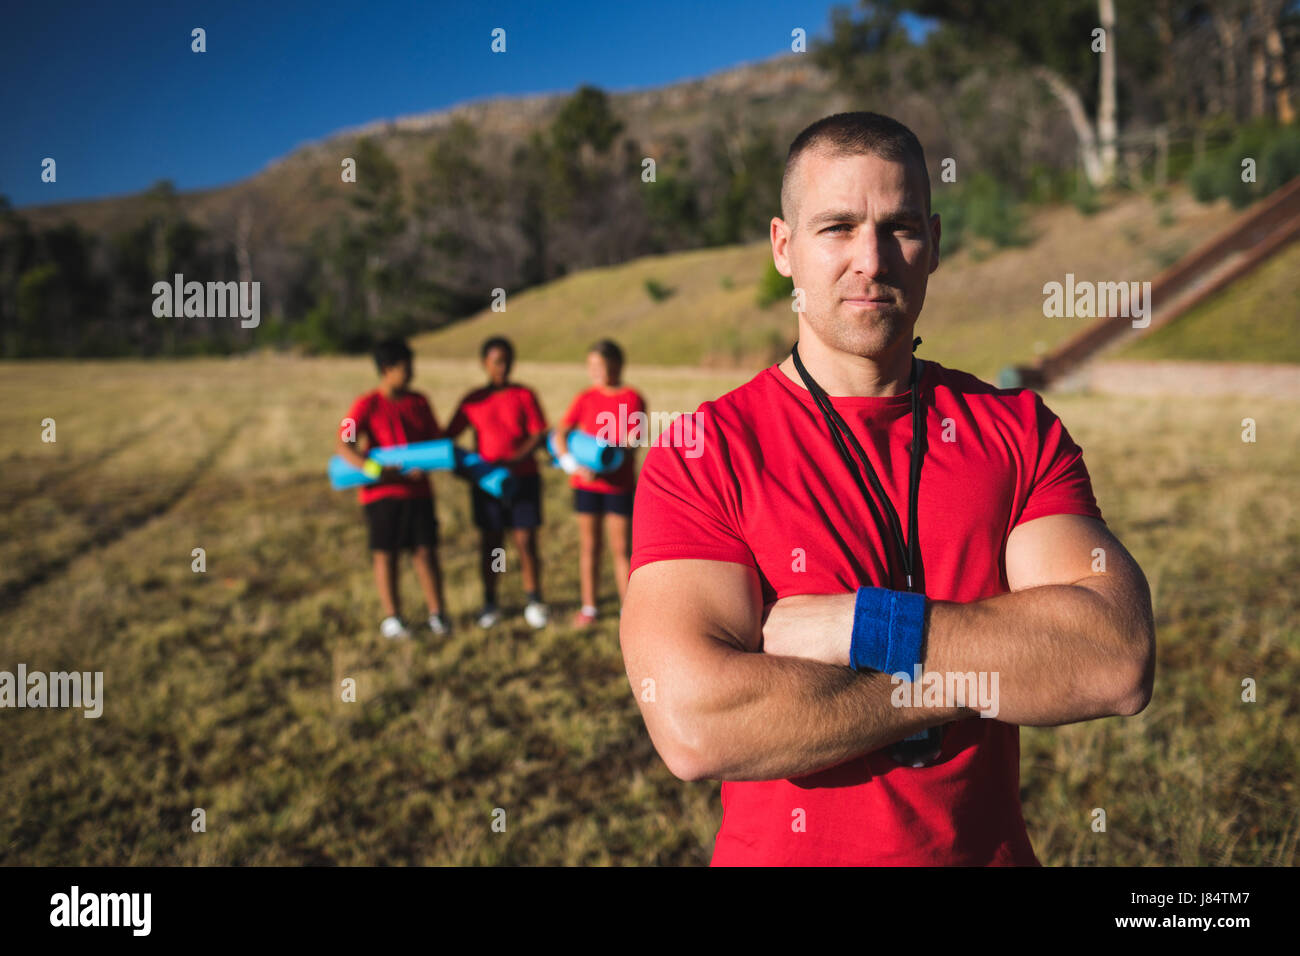 Portrait of trainer standing with arms crossed in the boot camp - Stock Image